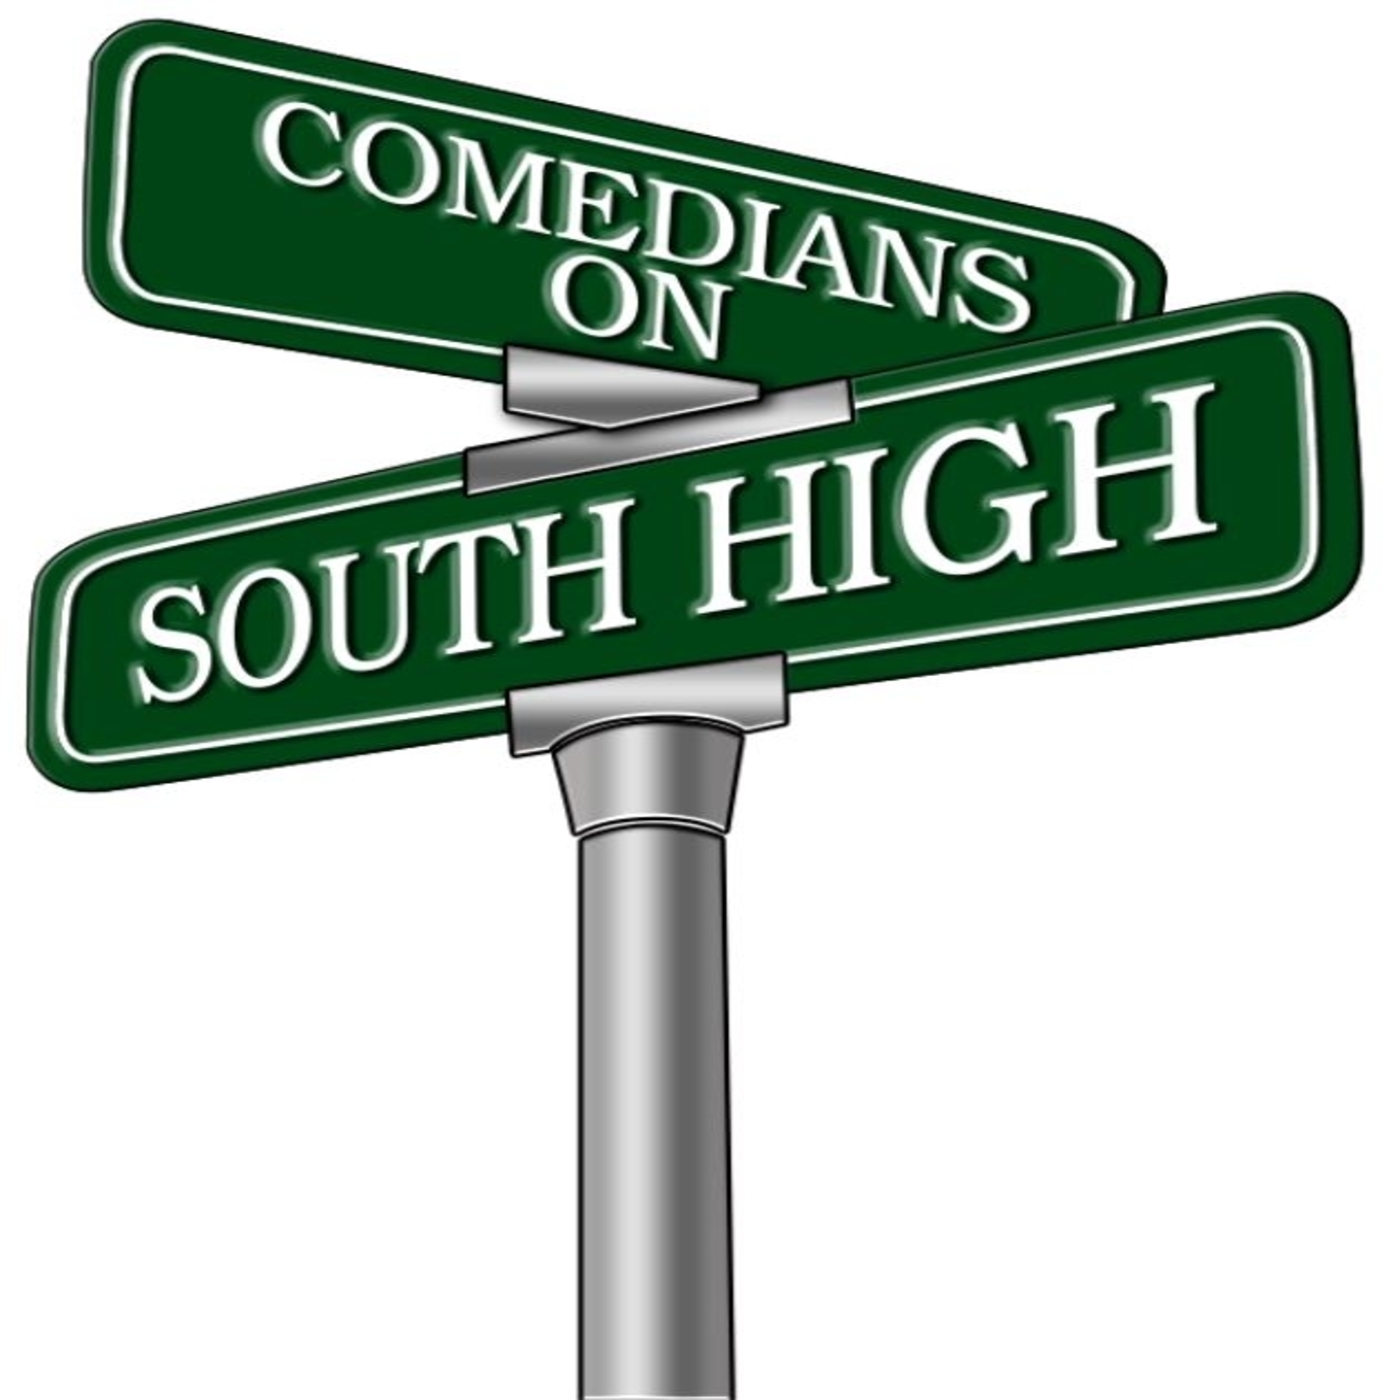 Show artwork for Comedians On South High